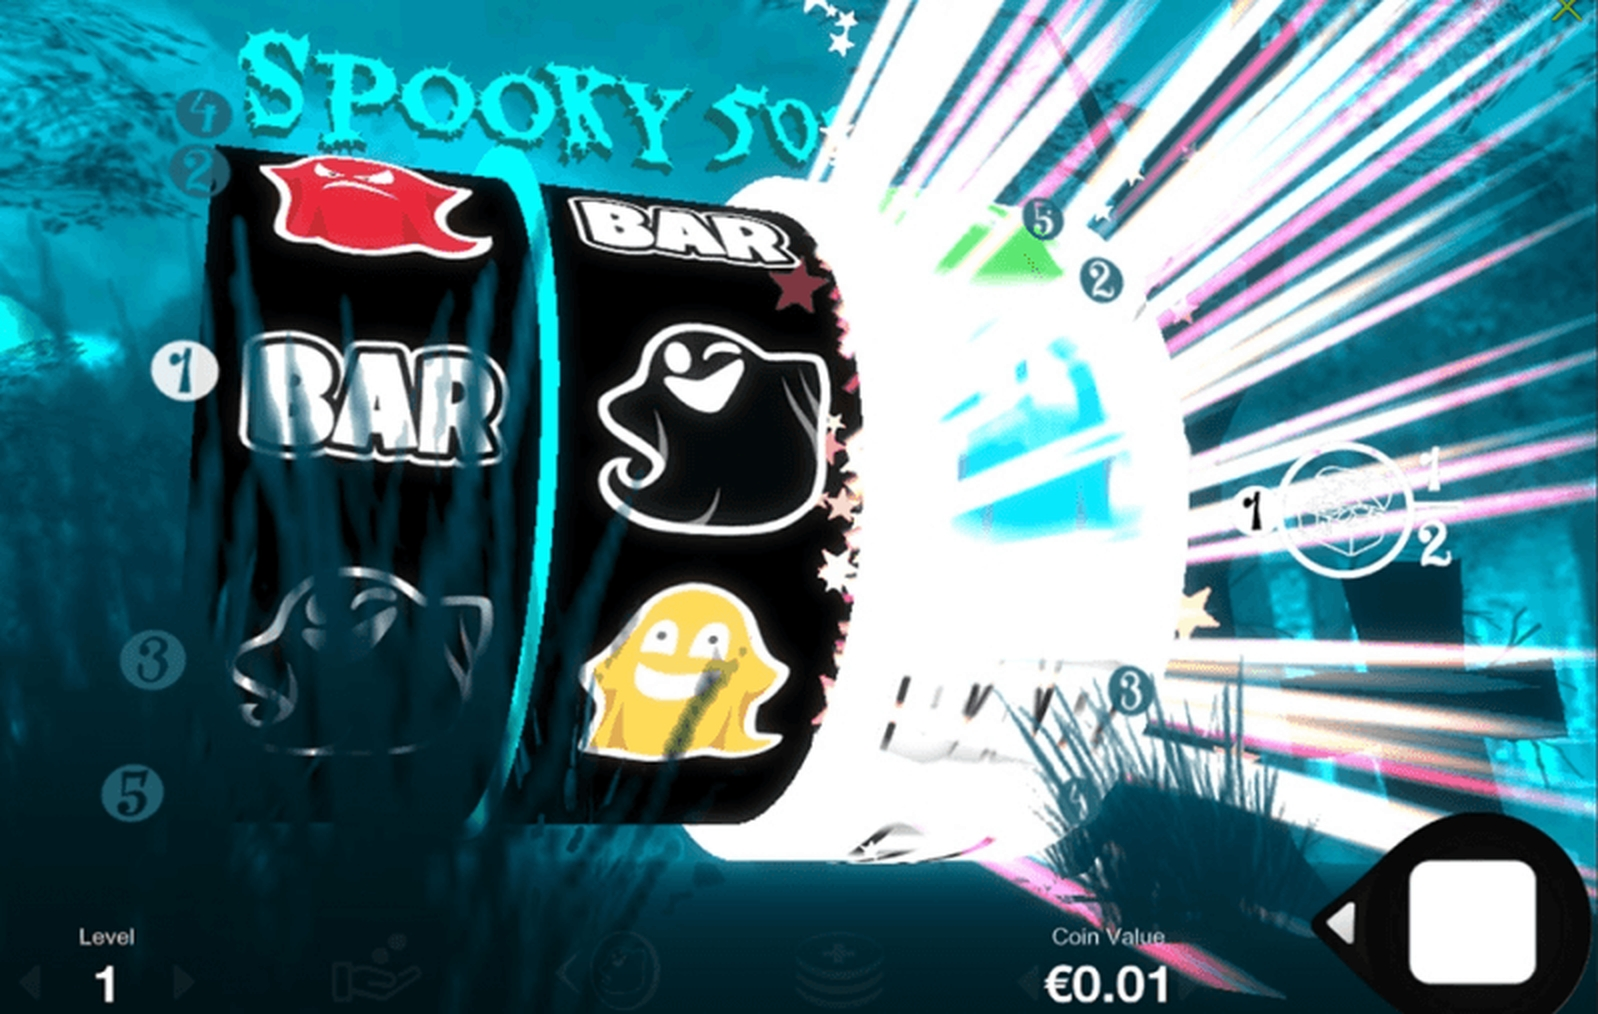 The Spooky 5000 Online Slot Demo Game by Fantasma Games